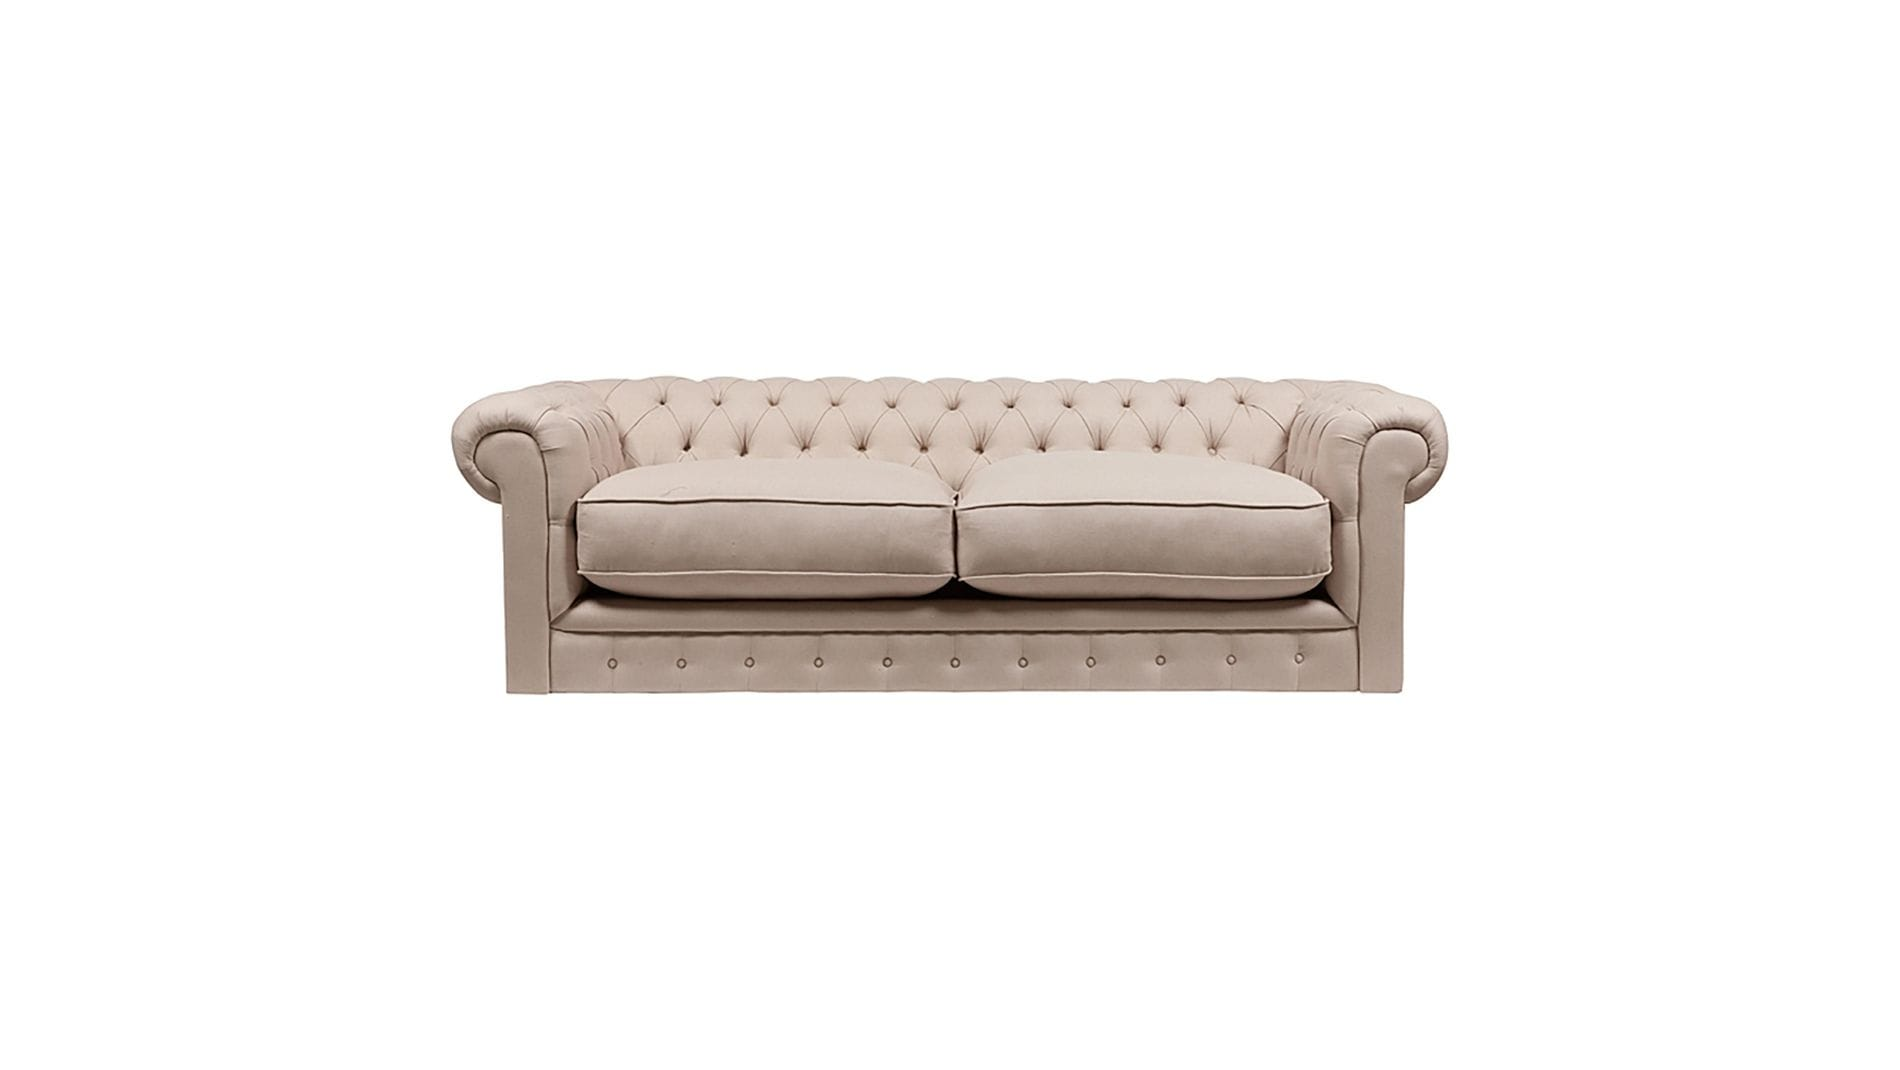 Диван The Pettite Kensington Upholstered Sofa Кремовый Лен Р